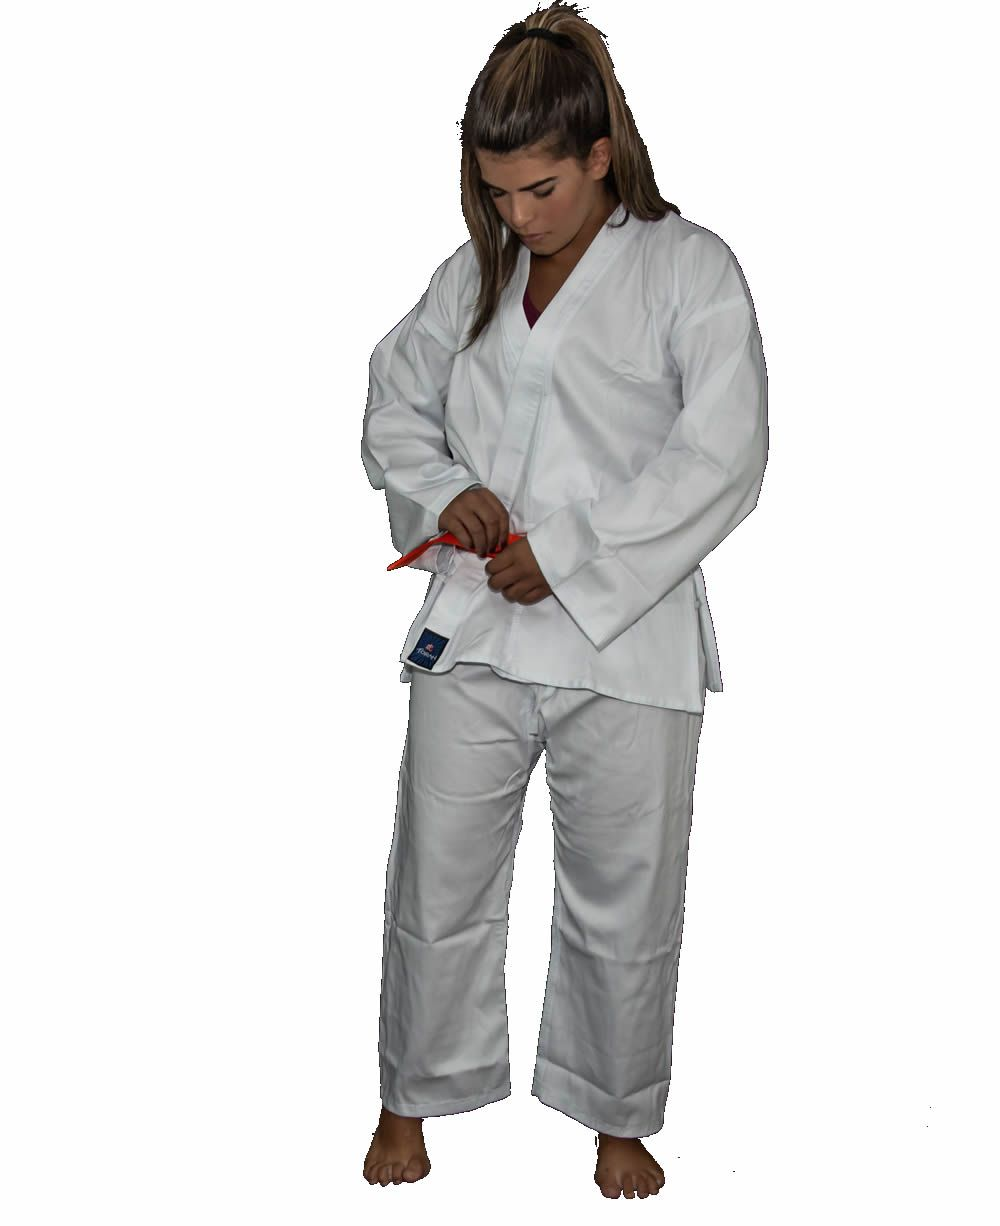 Kimono Karate KS Brim Light - Branco - Adulto - Torah